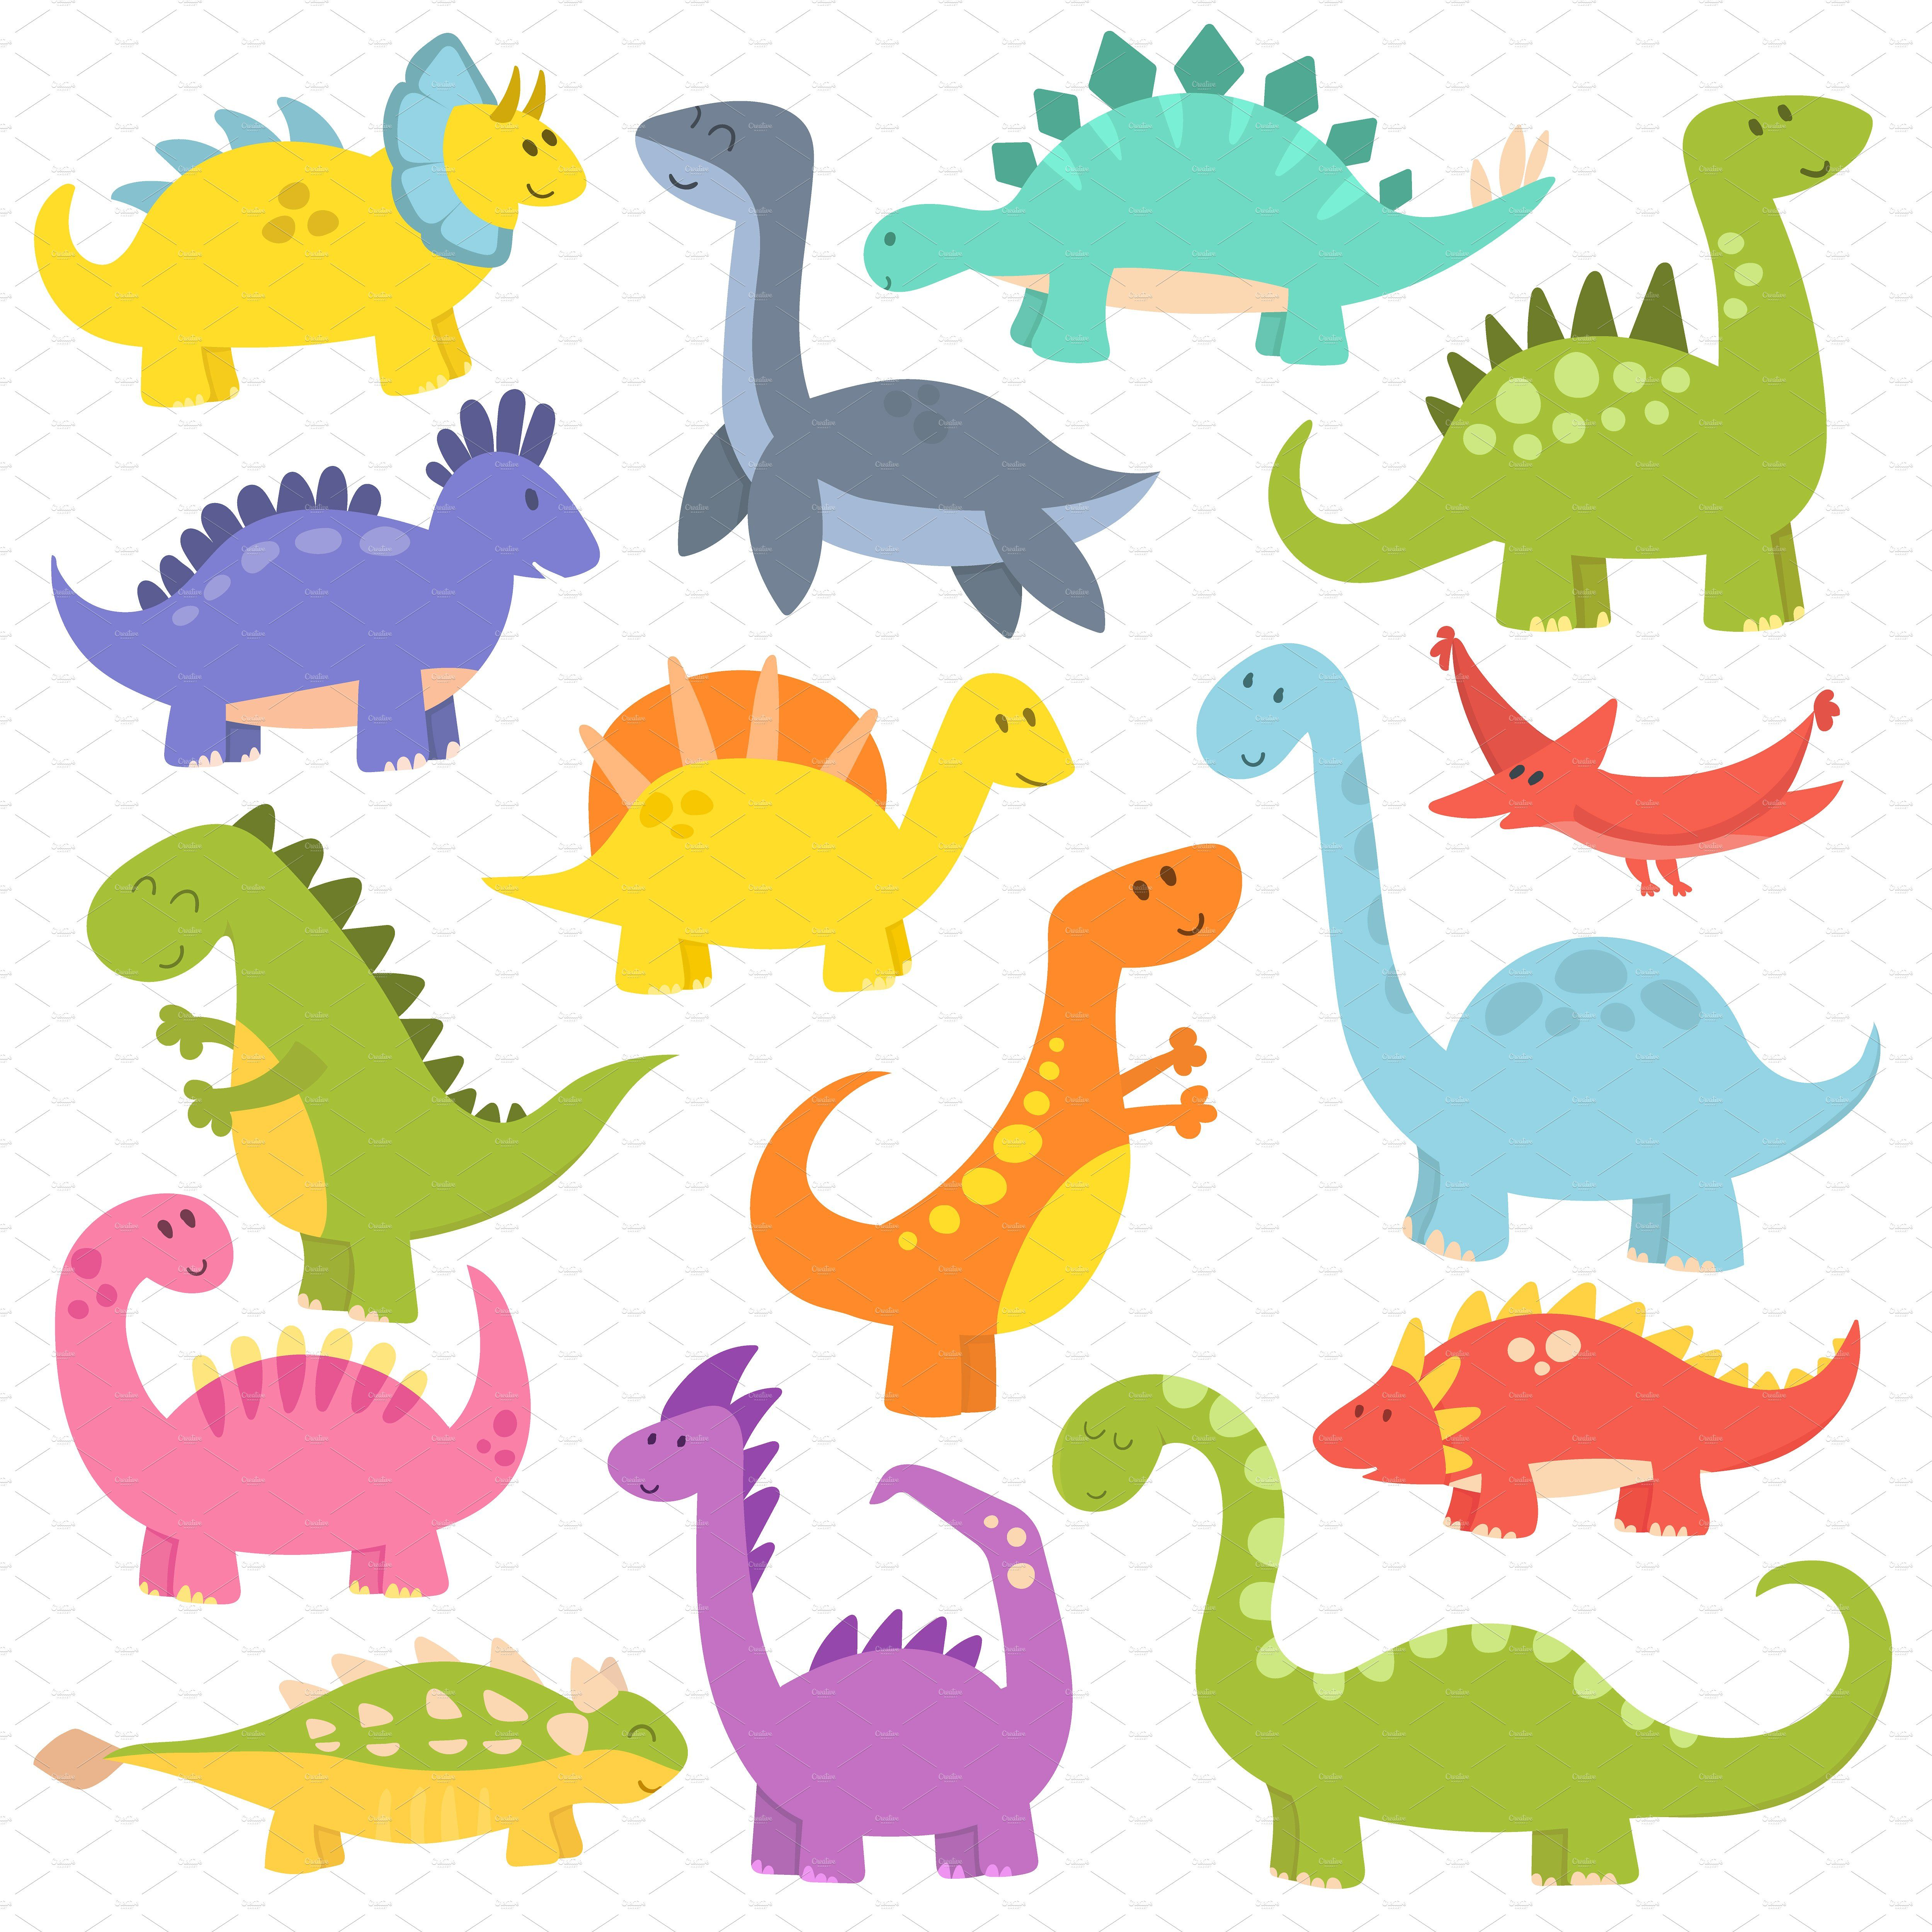 A Collection Of 9 Dinosaurs In A Child Like Style Dinosaur